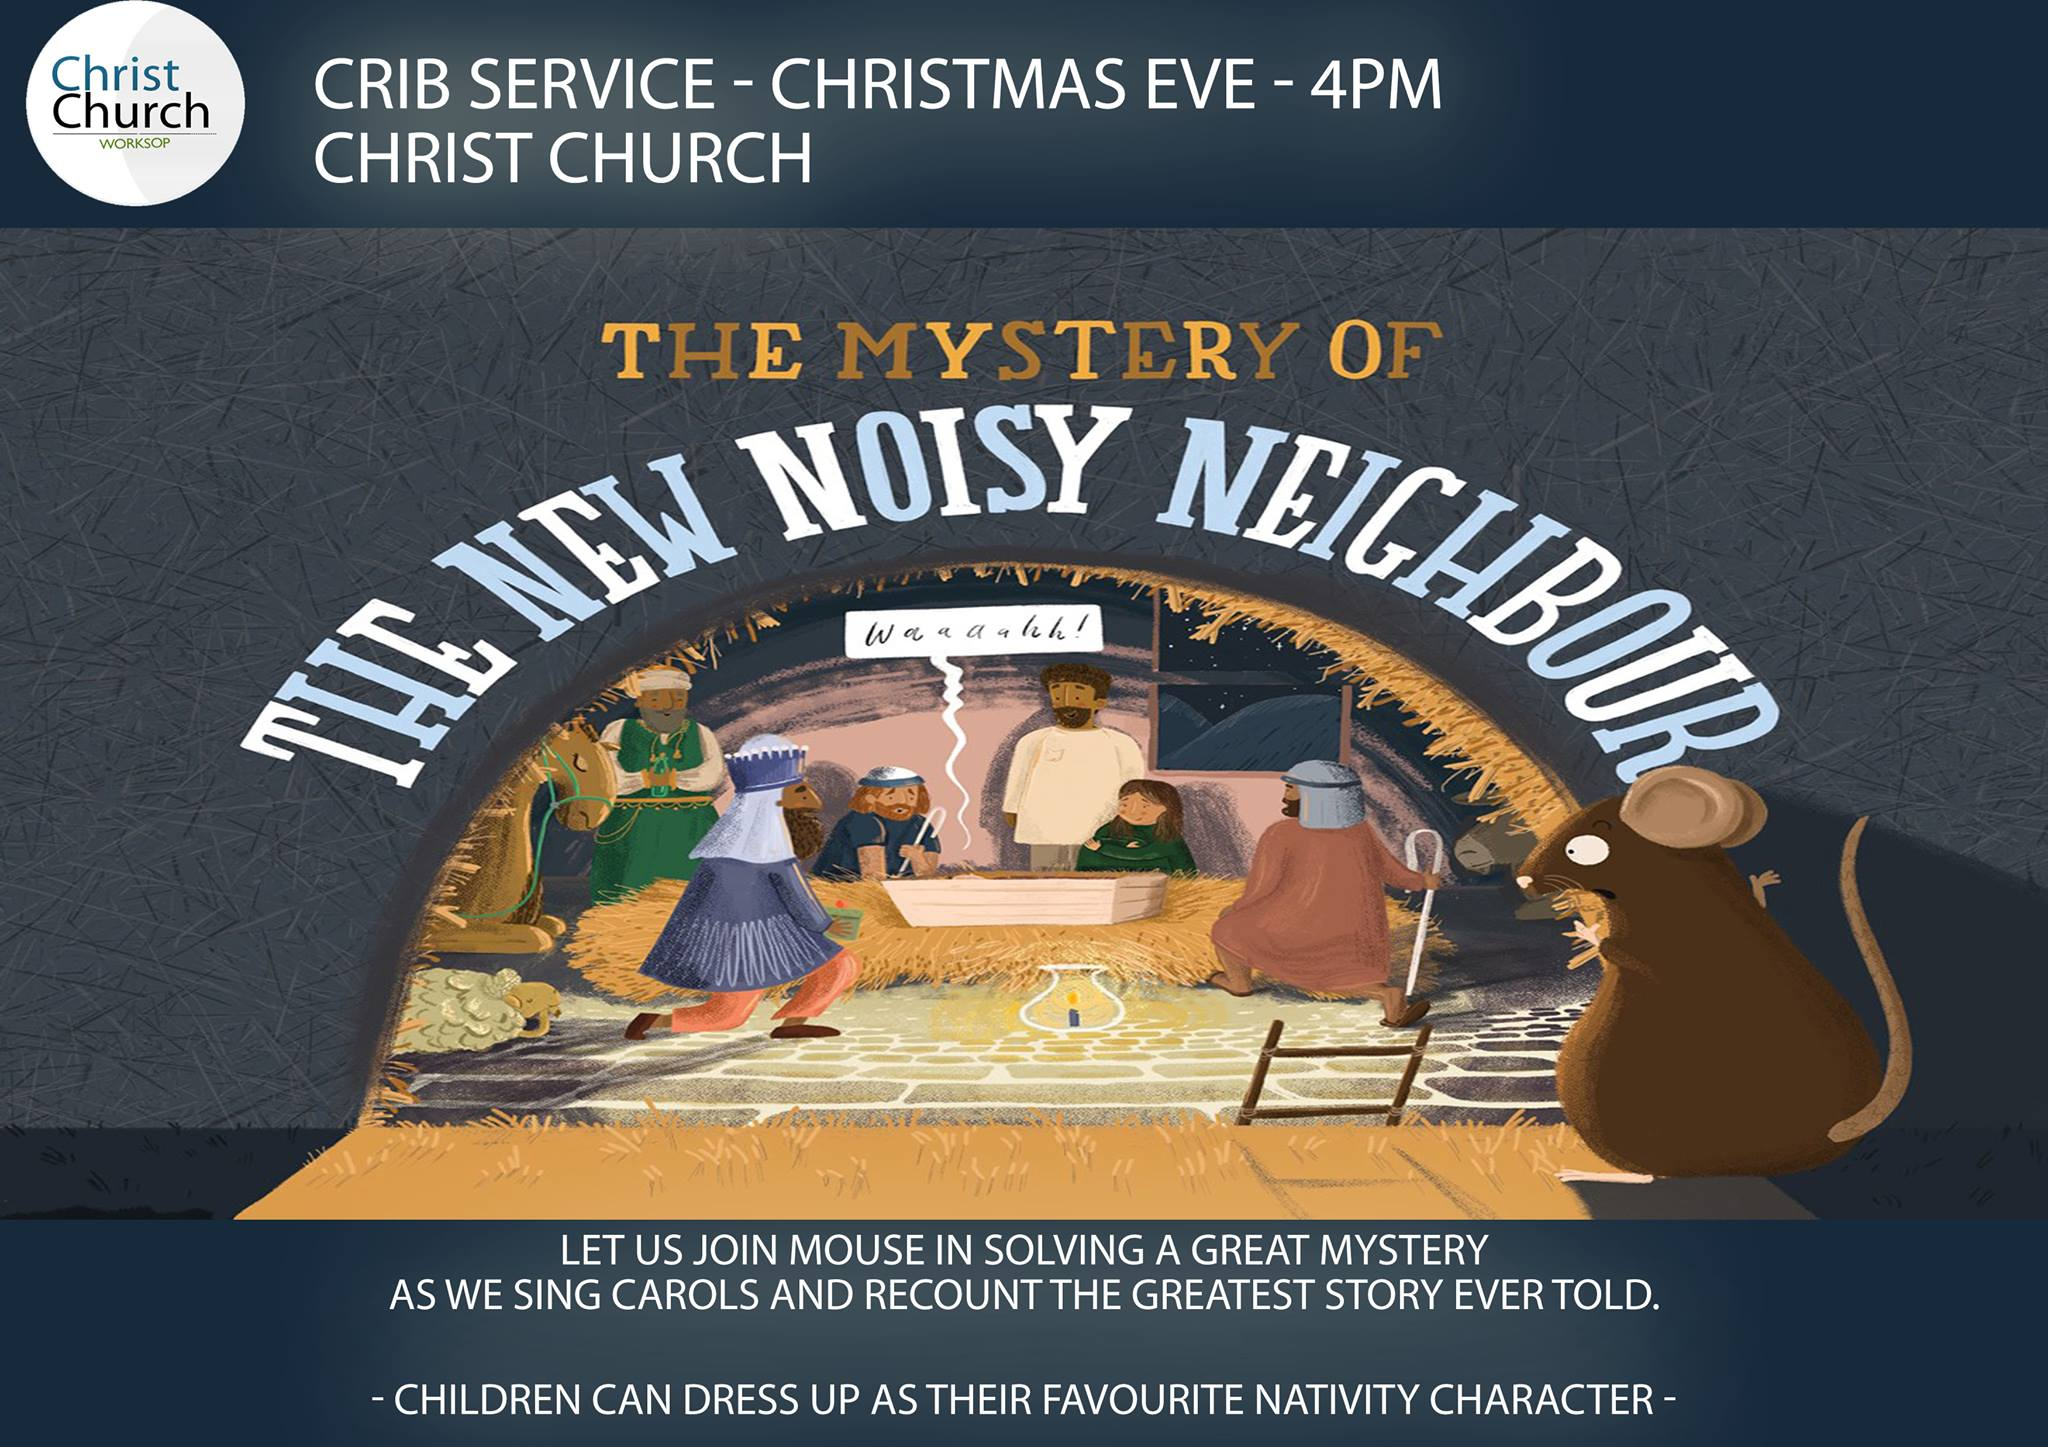 The Mystery Of The New Noisy Neighour  event.